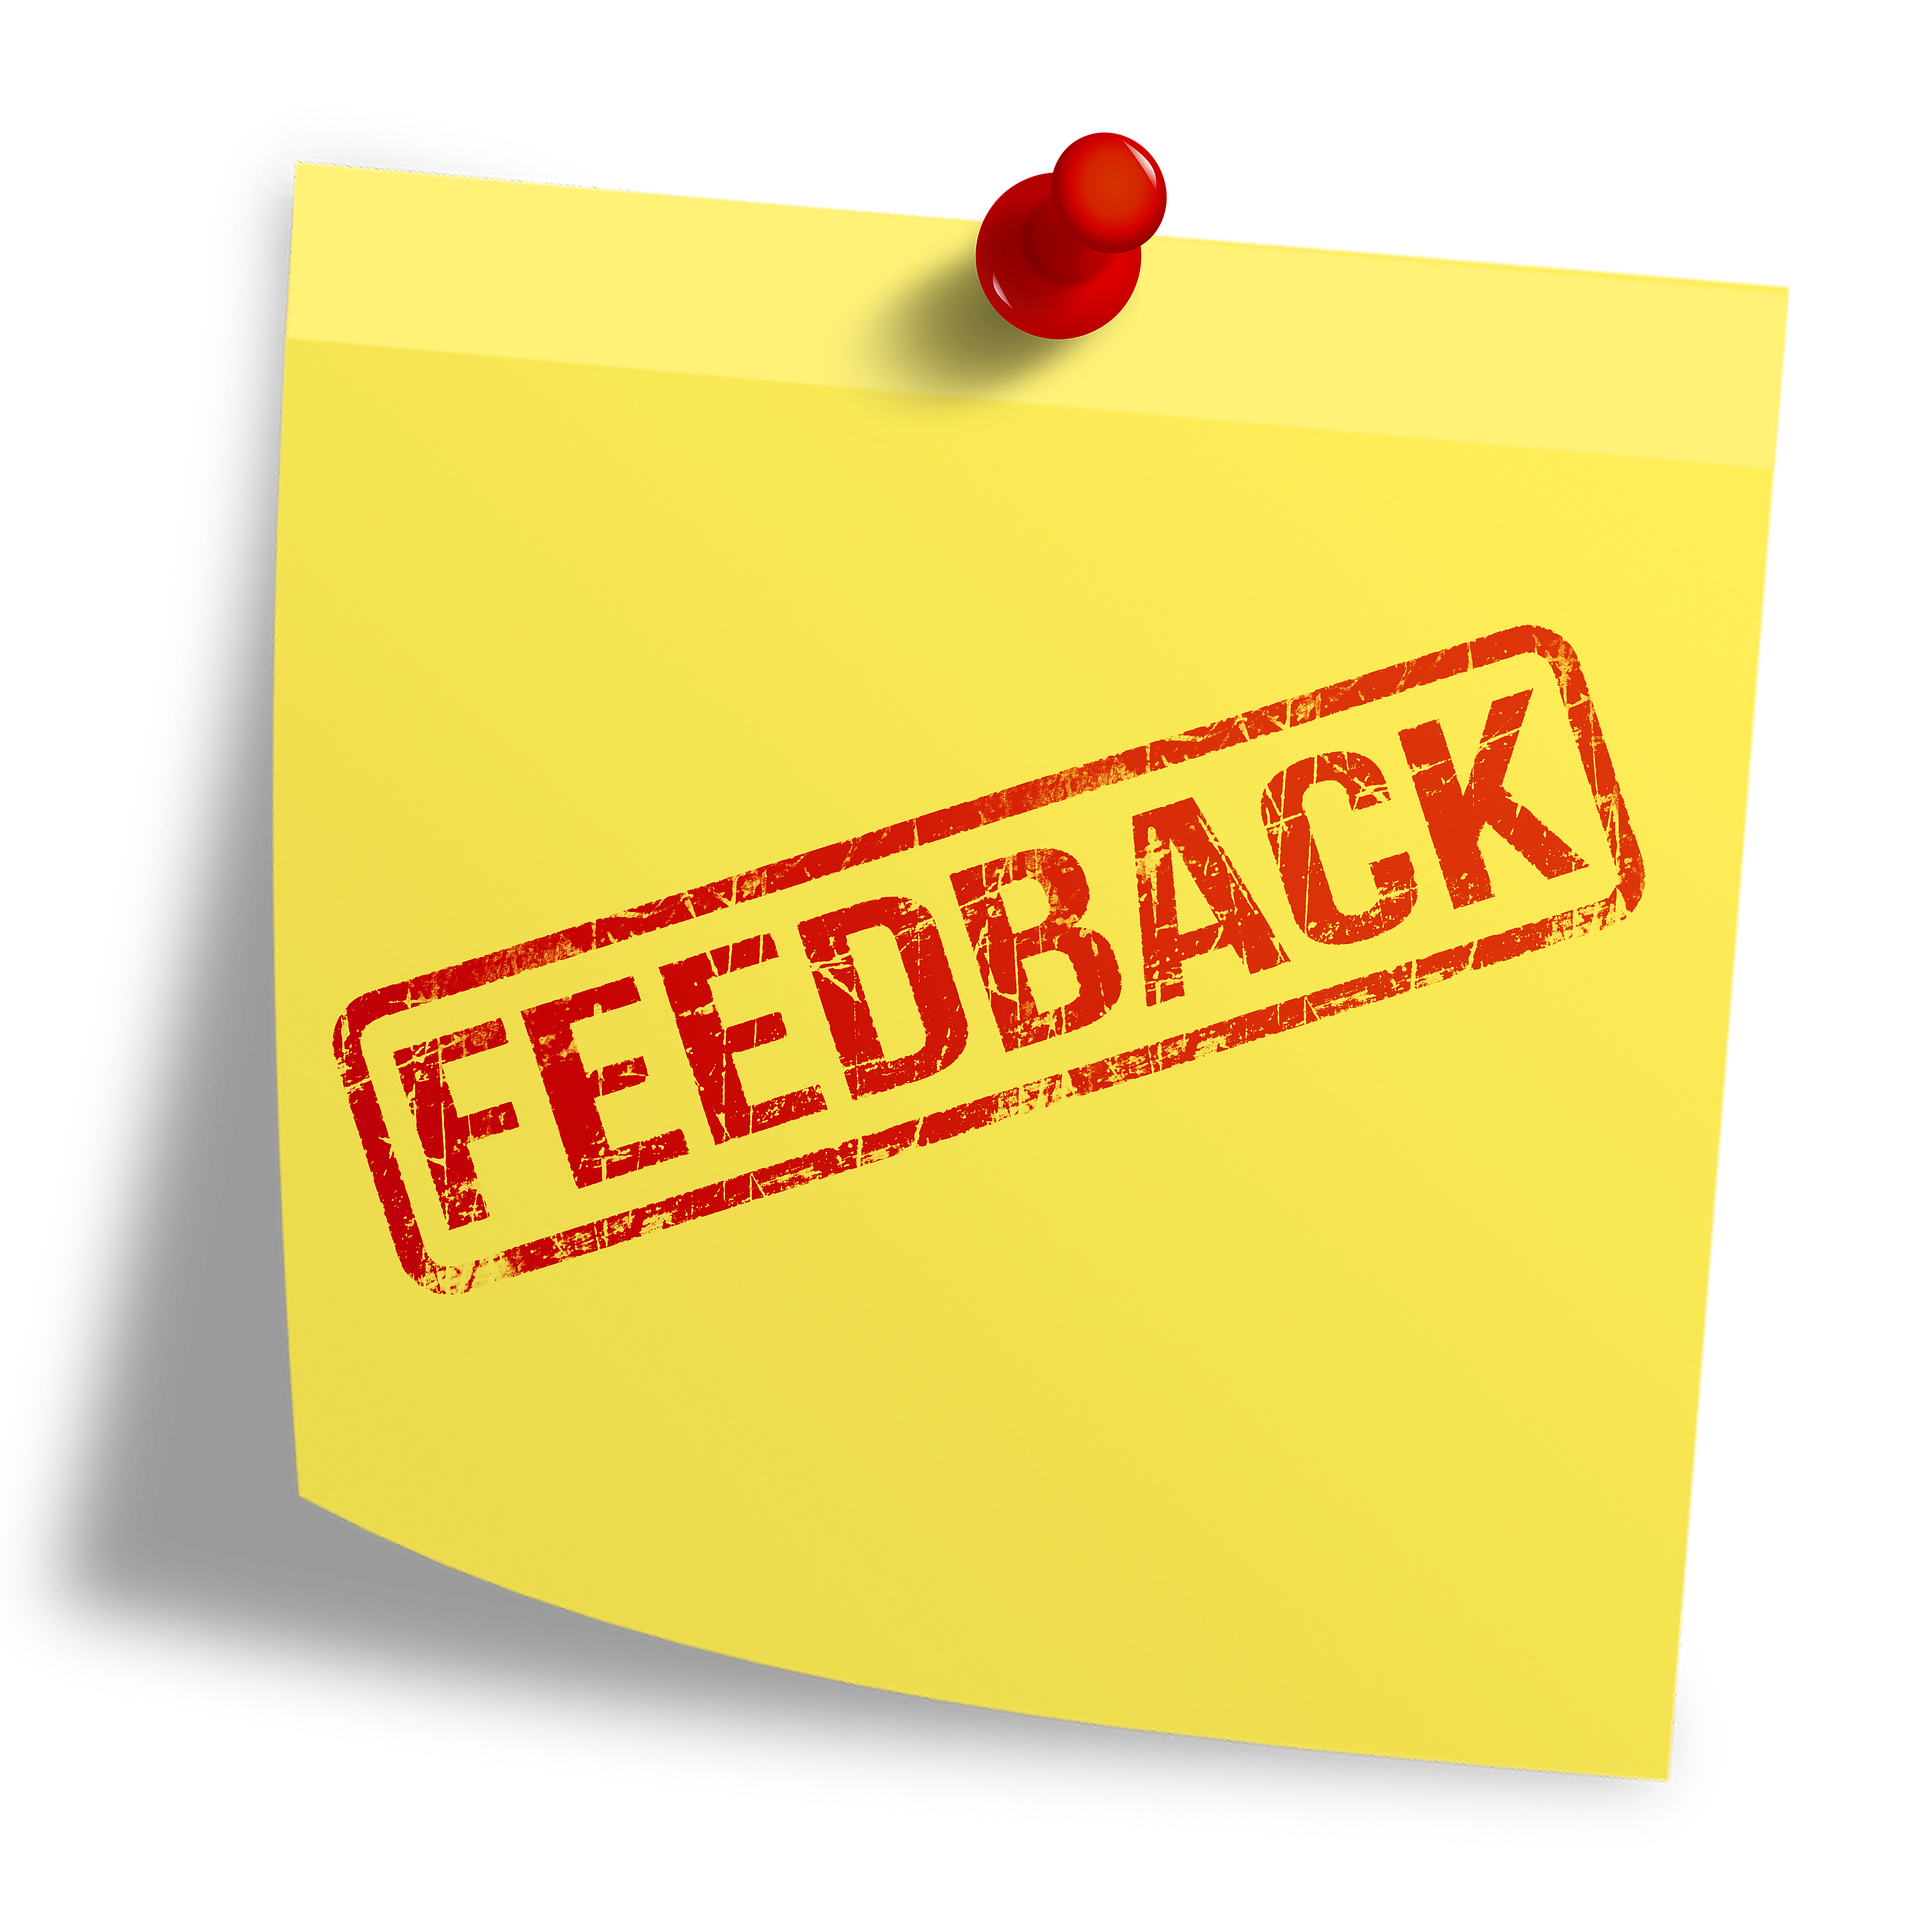 feedback map, feedback, sticky note